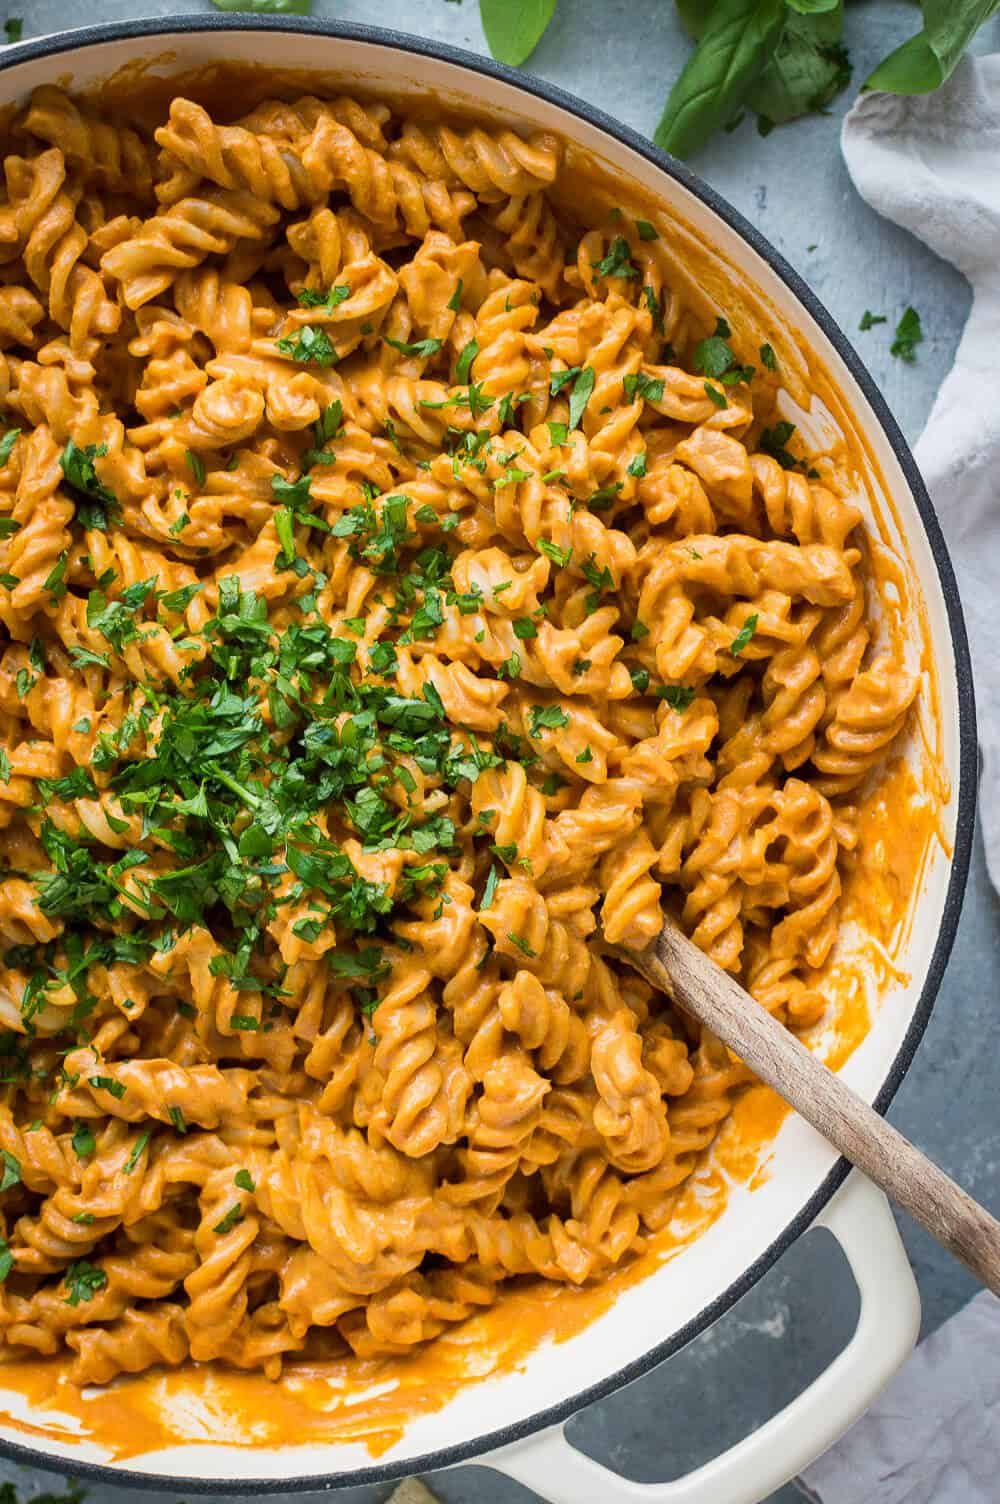 Close up of a pan of vegan creamy roasted red pepper tomato pasta topped with chopped herbs.